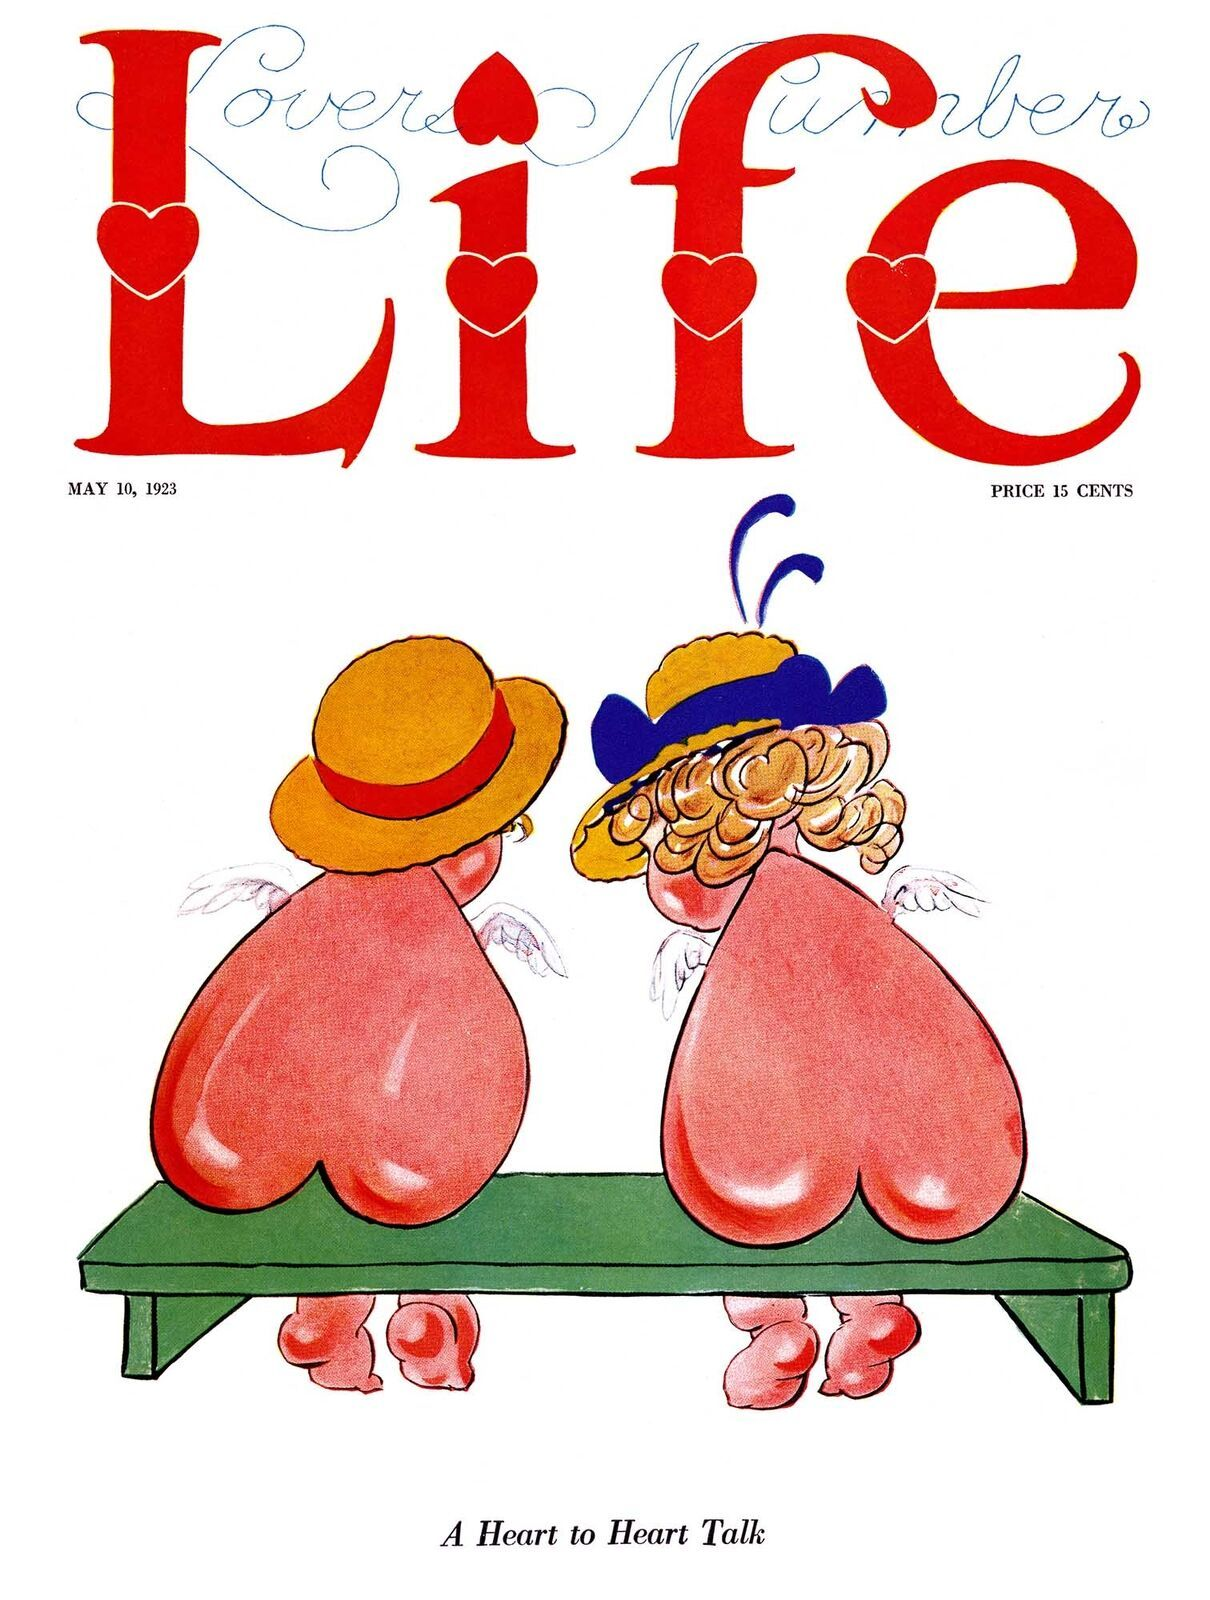 Life Magazine Prints: A Heart To Heart Talk - Herford - May 10 1923 - $12.95 - $19.95